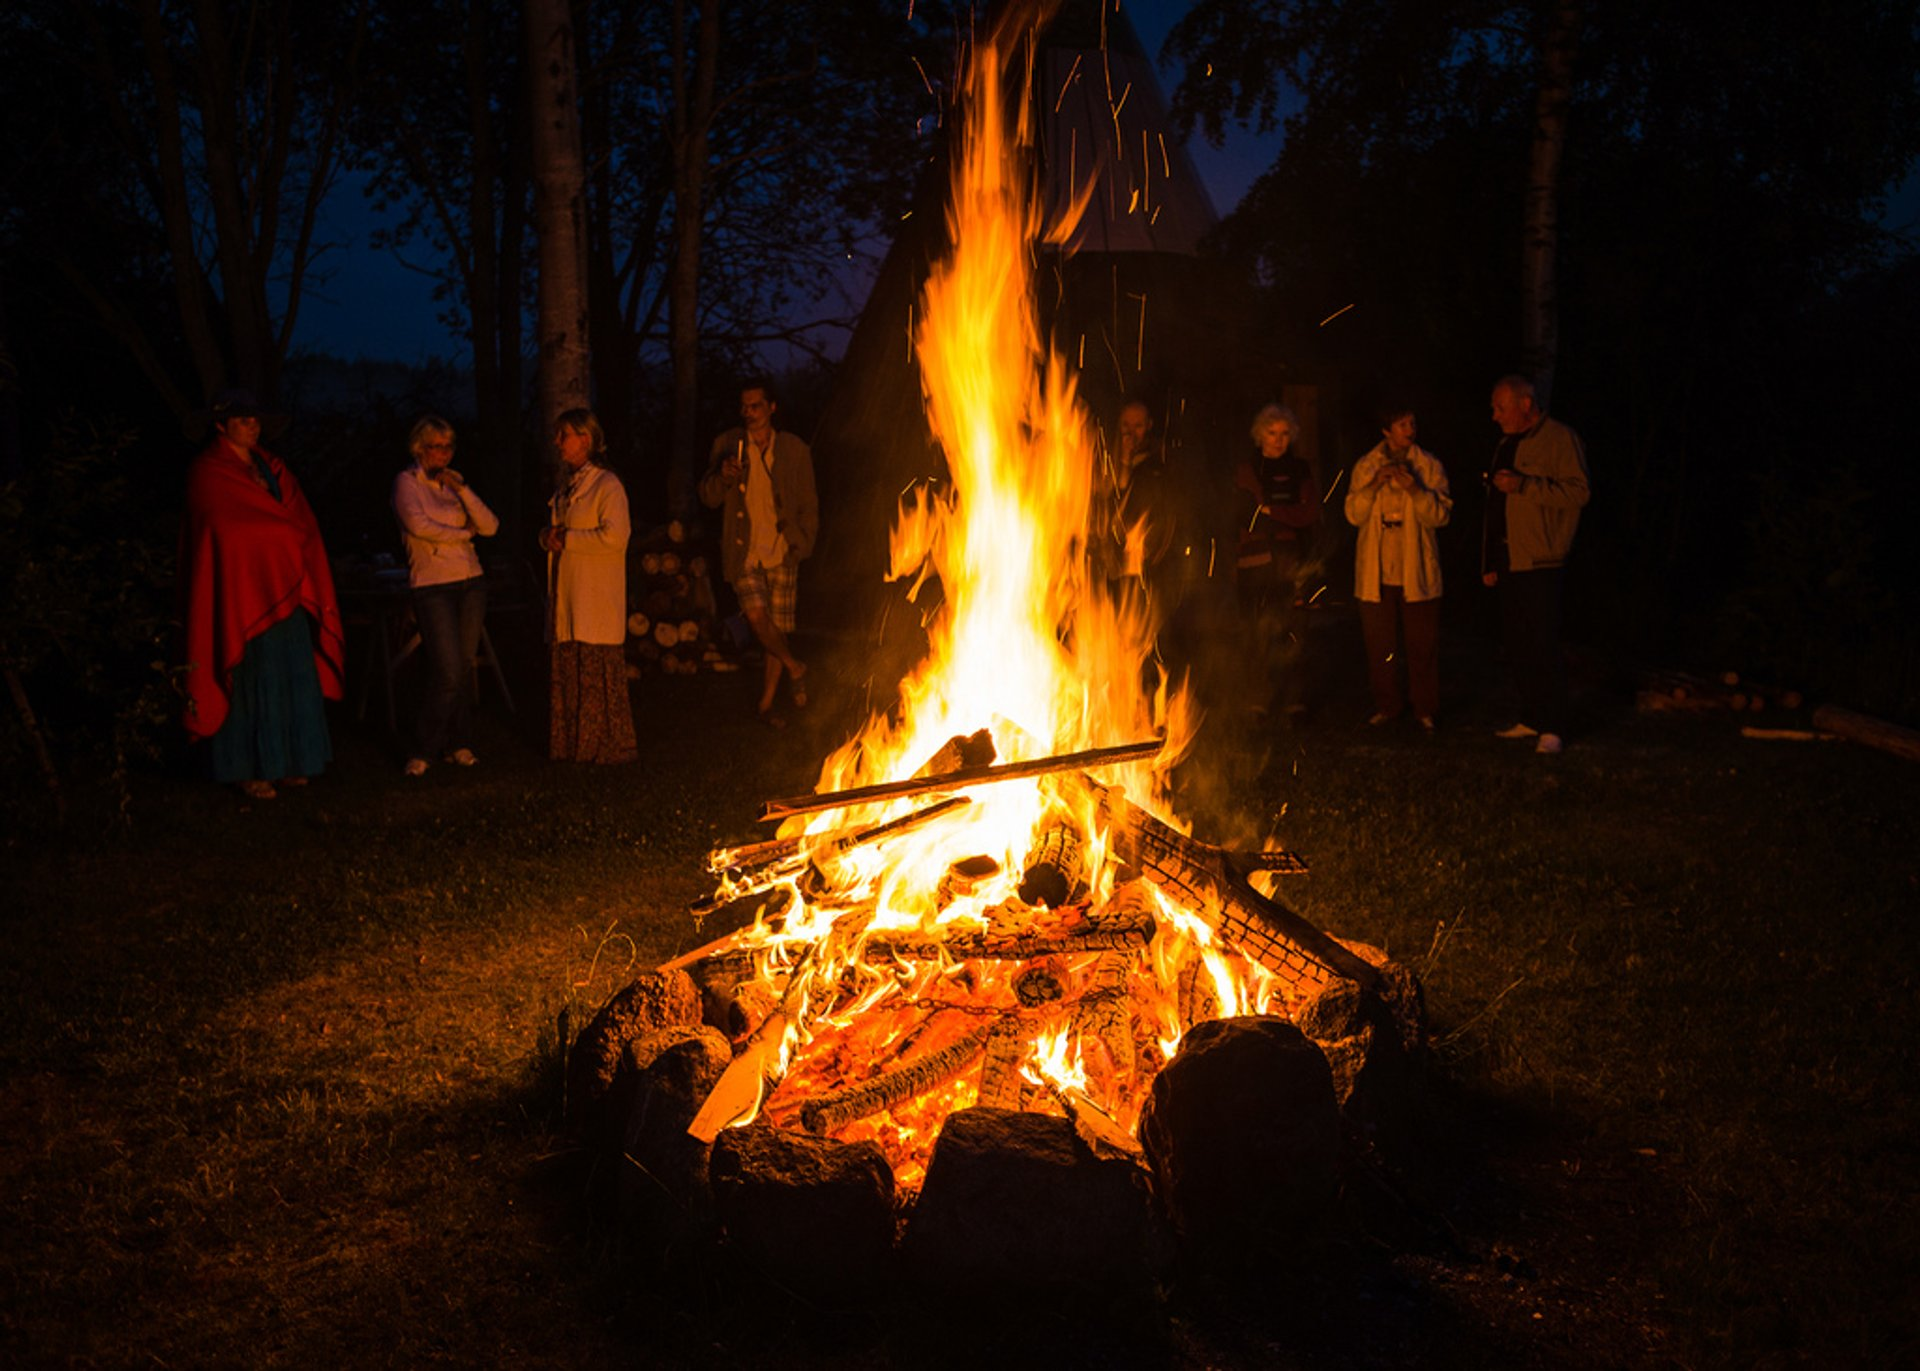 Jaanipäev or Midsummer in Estonia - Best Season 2020